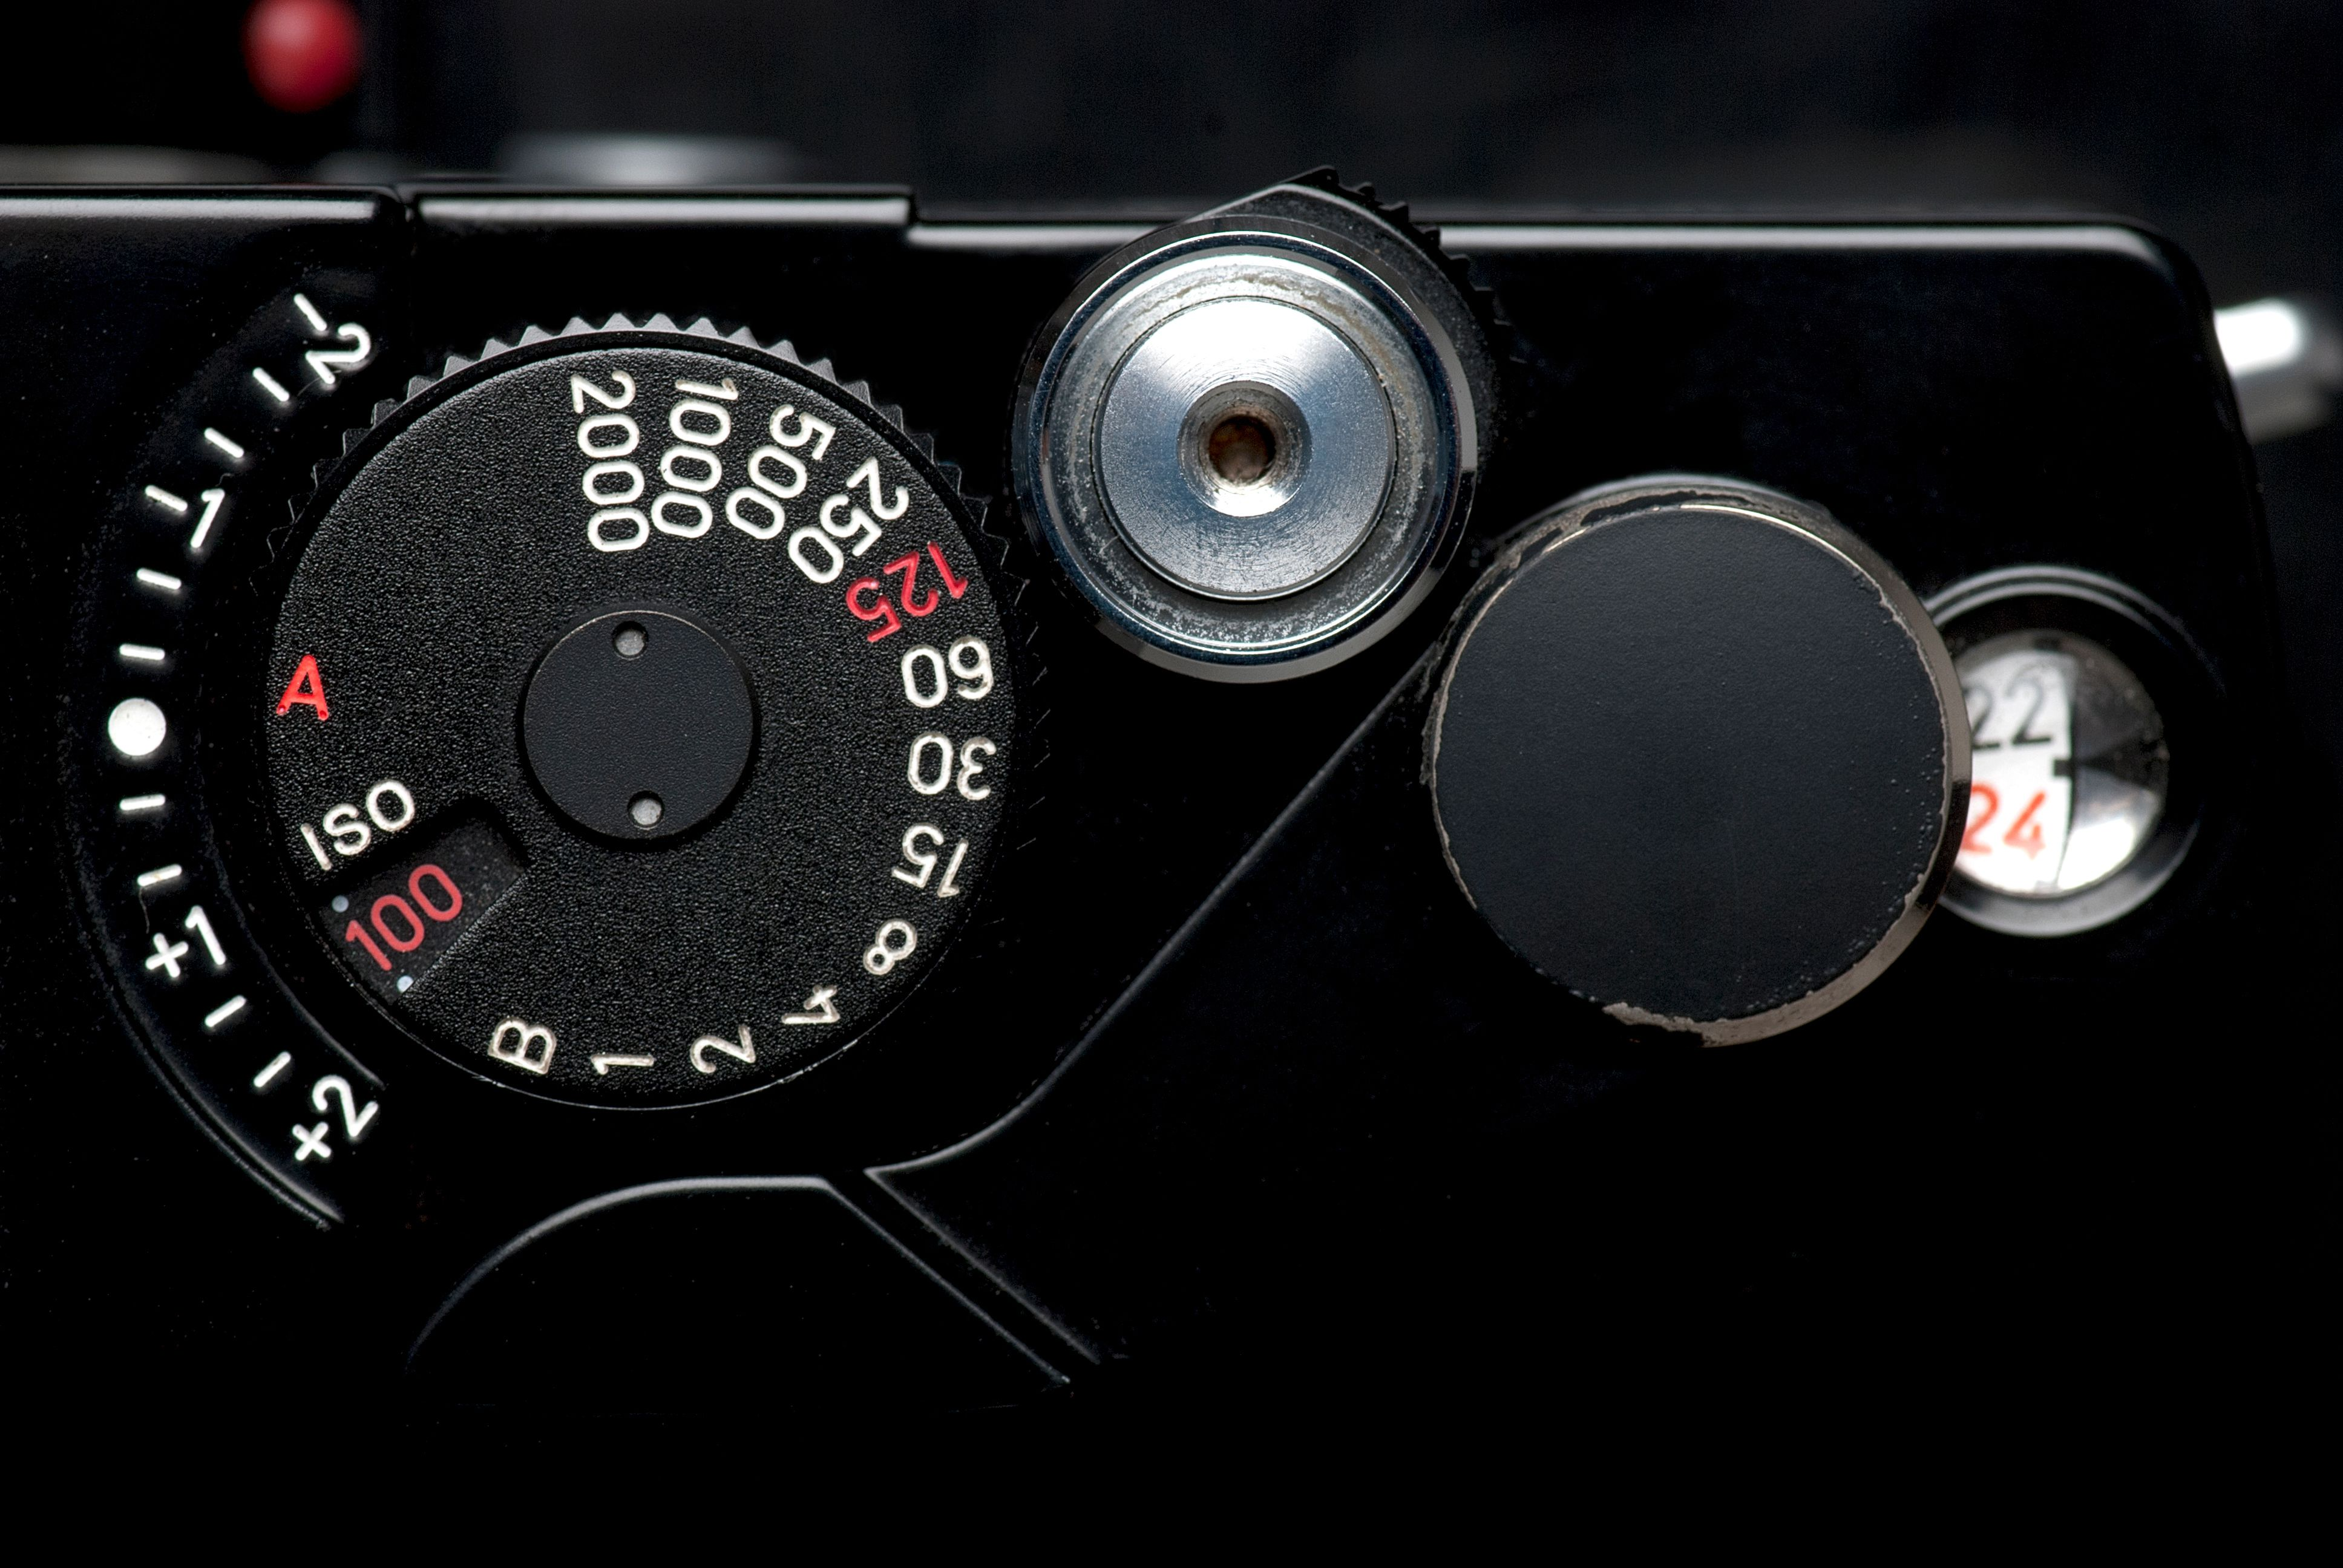 A vintage camera's shutter speed dial